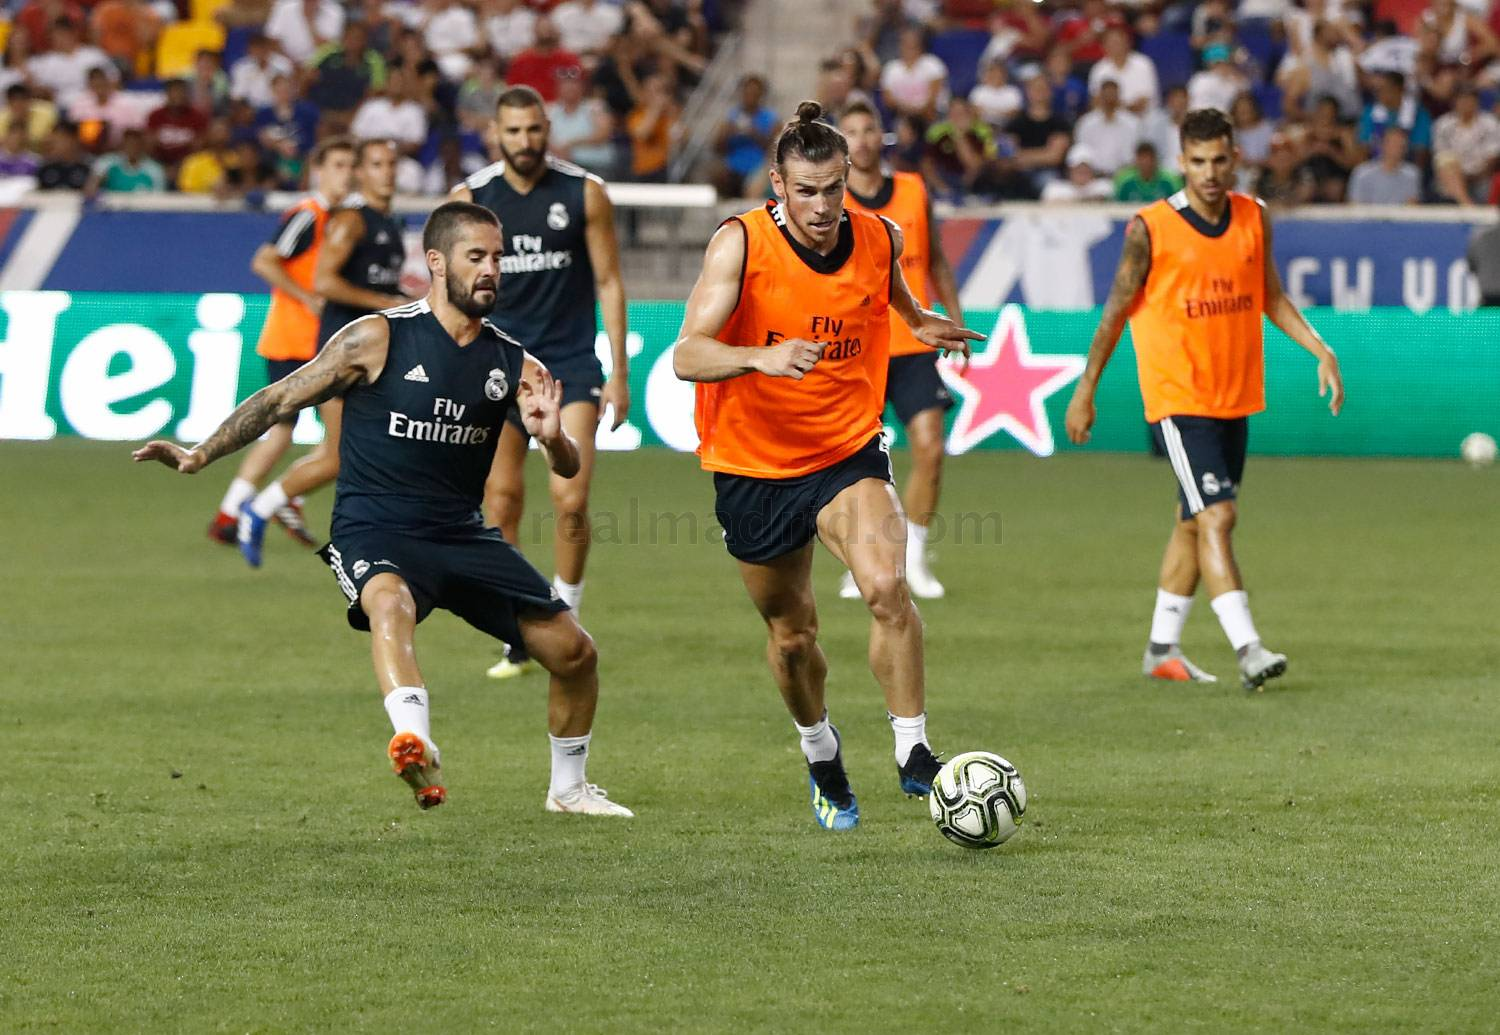 Real Madrid - Entrenamiento del Real Madrid en el Red Bull Arena - 07-08-2018